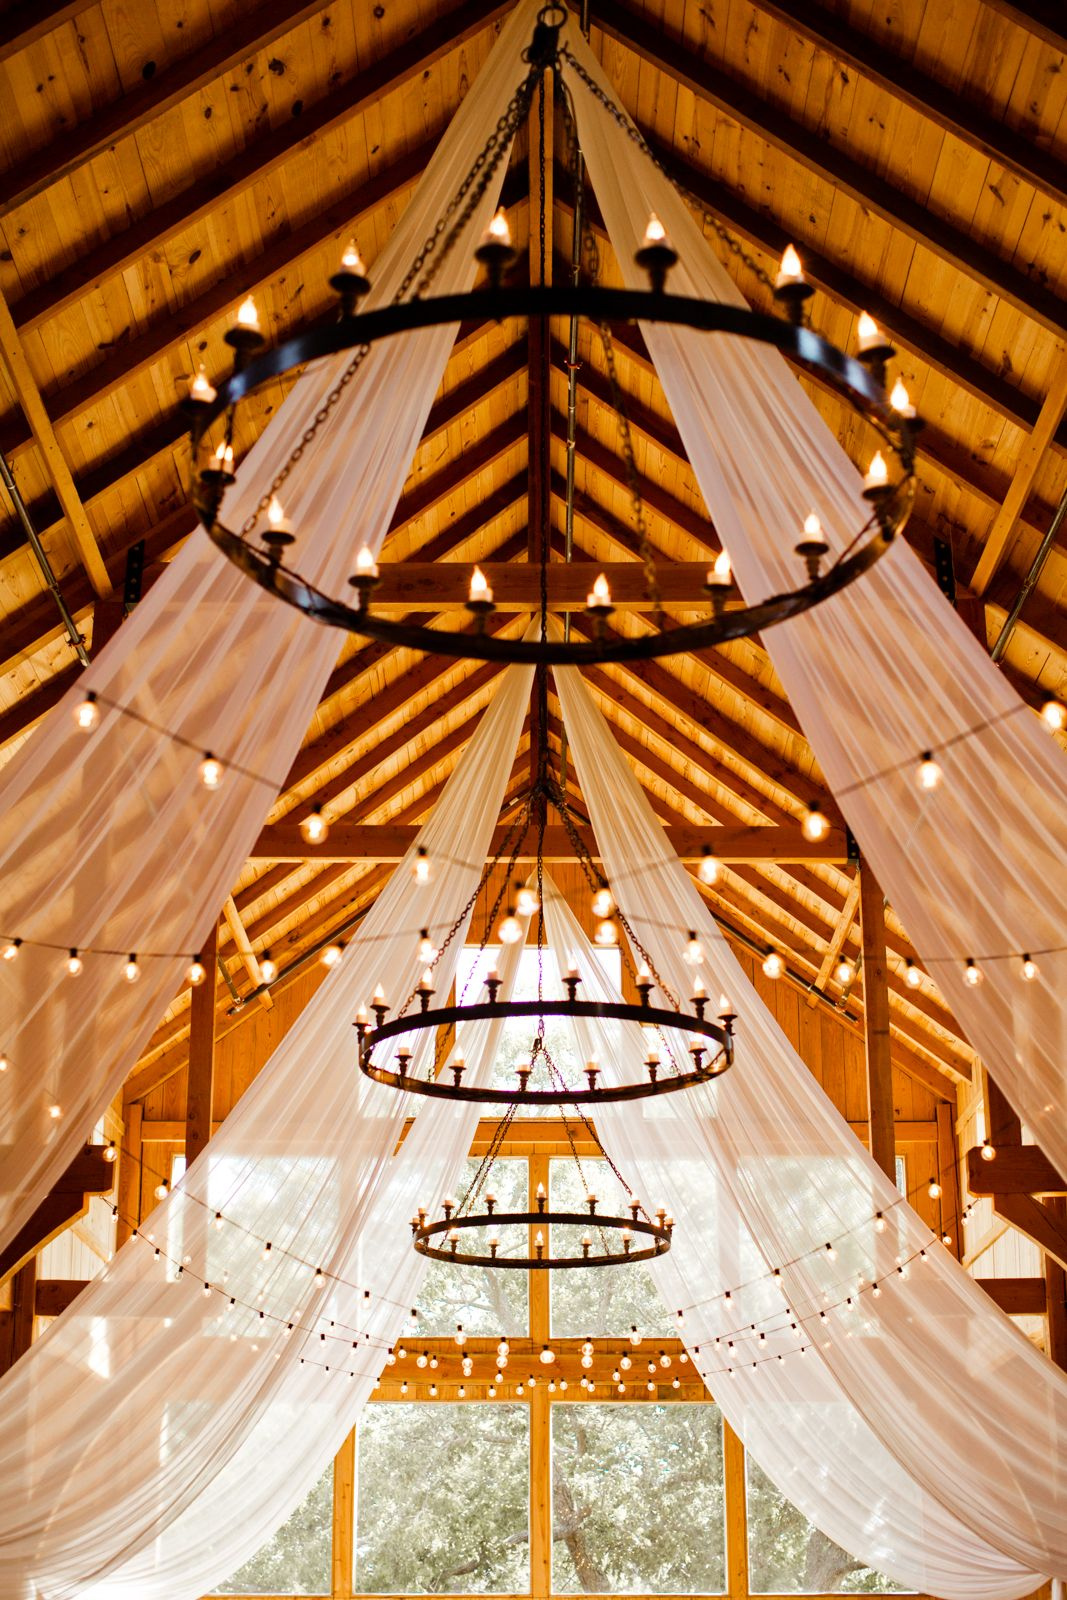 Pin by 7 Arrow on 7 Arrow | Dfw wedding venues, Barn ...